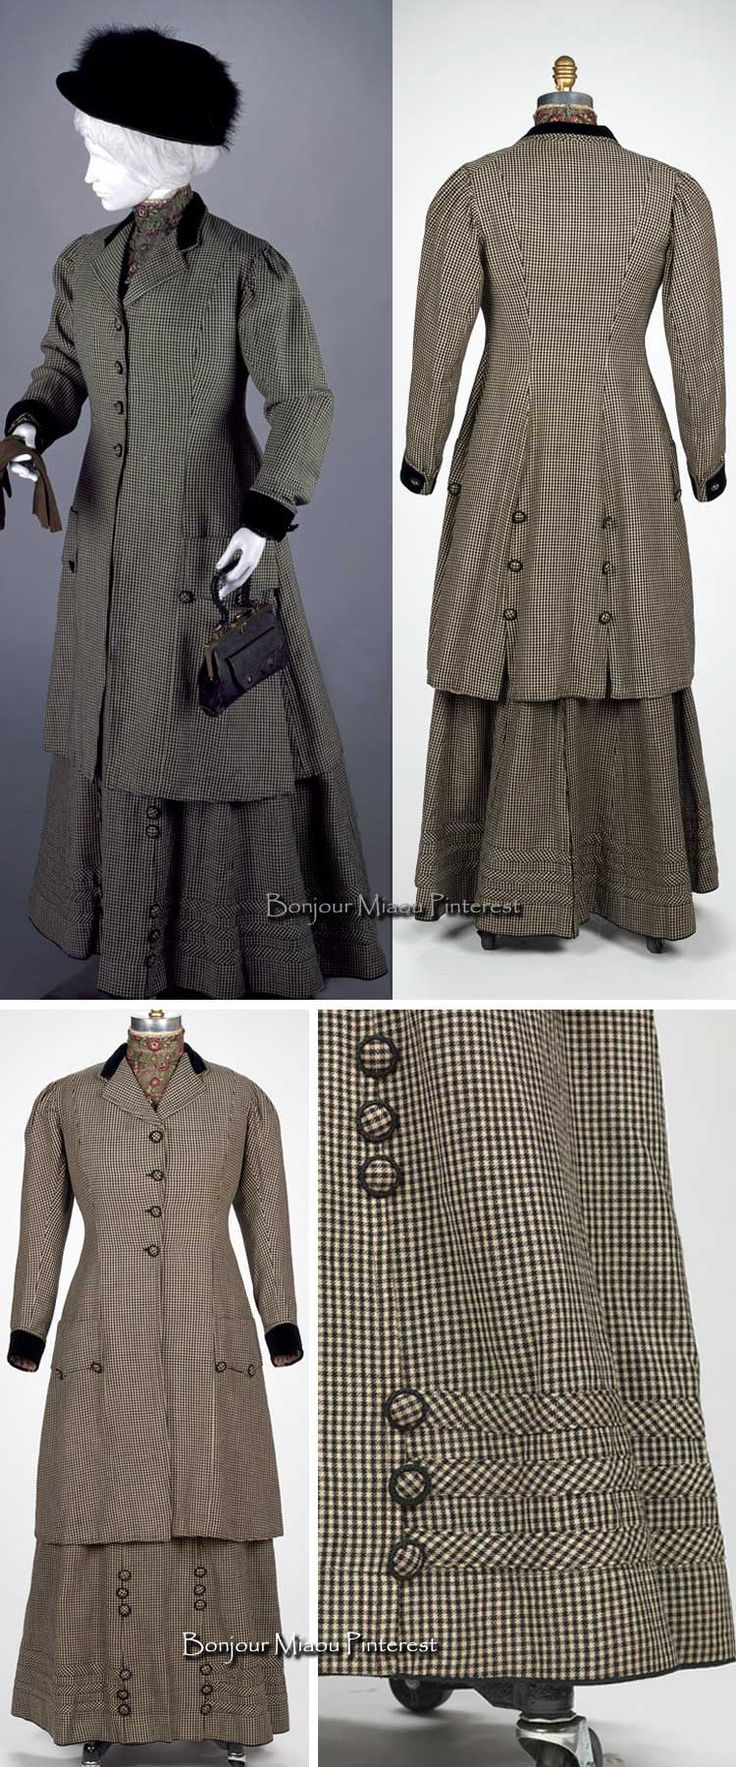 Suit, Louis Caplan, American, ca. 1907. Wool twill weave coat, bodice, and skirt with silk satin lining. Rhode Island School of Design Museum